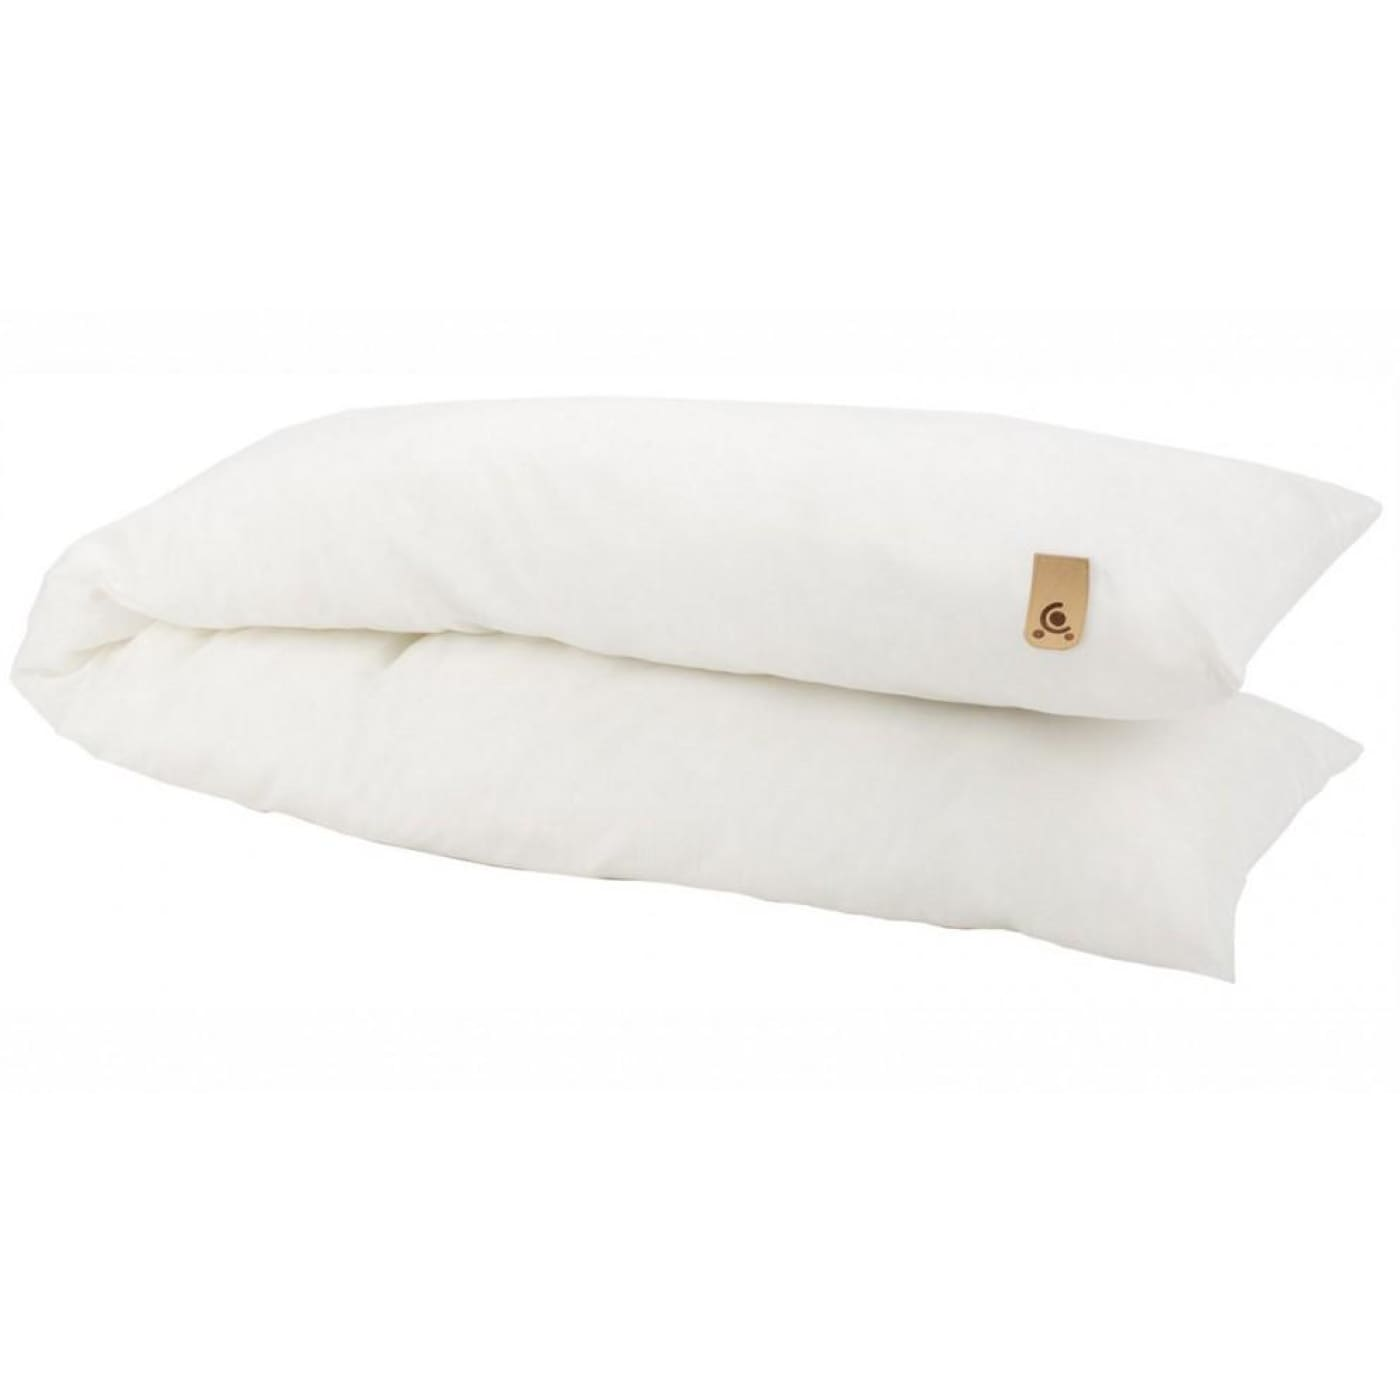 Cuddle Co Maternity Pillow 6ft - FOR MUM - MATERNITY PILLOWS